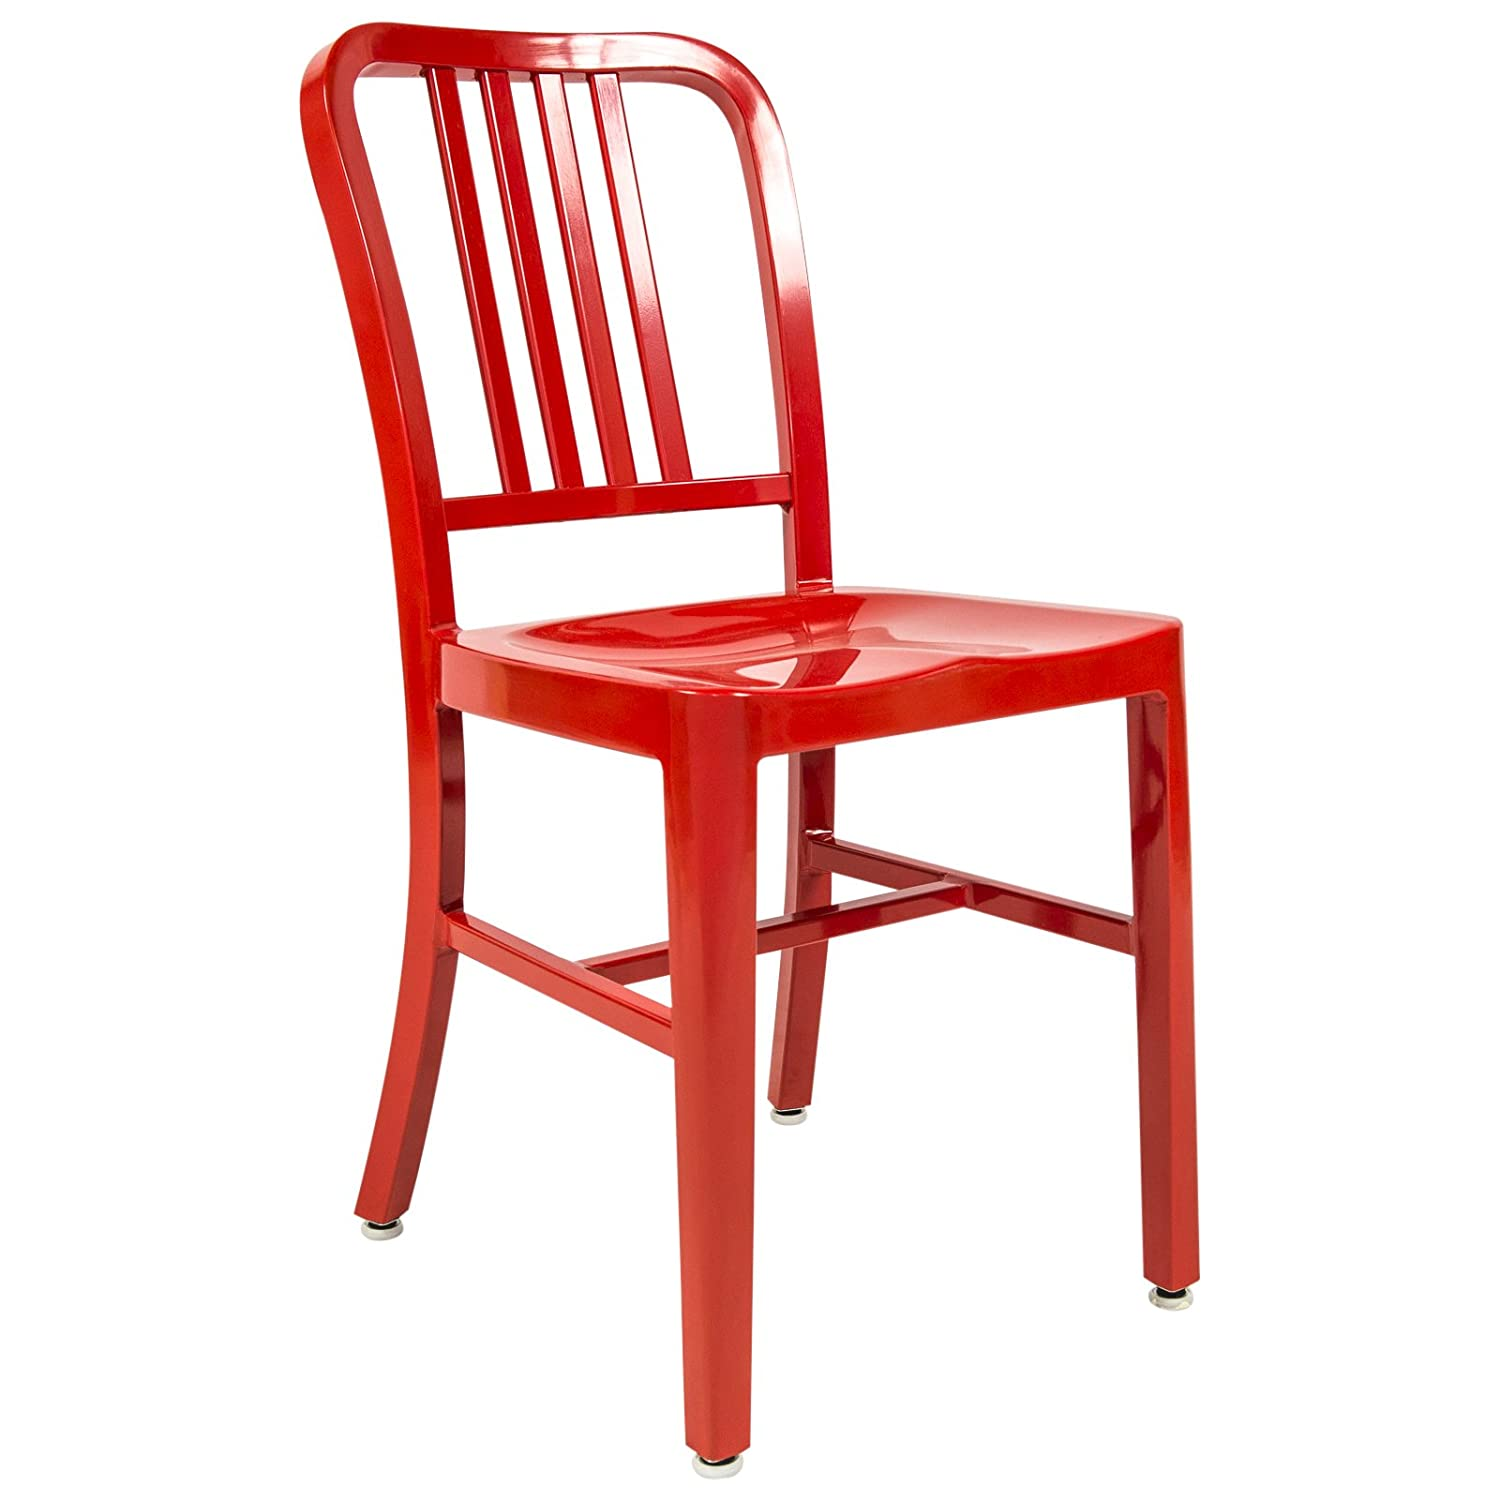 Amazon.com: LeisureMod Modern Alton Side Dining Chair in Red ...